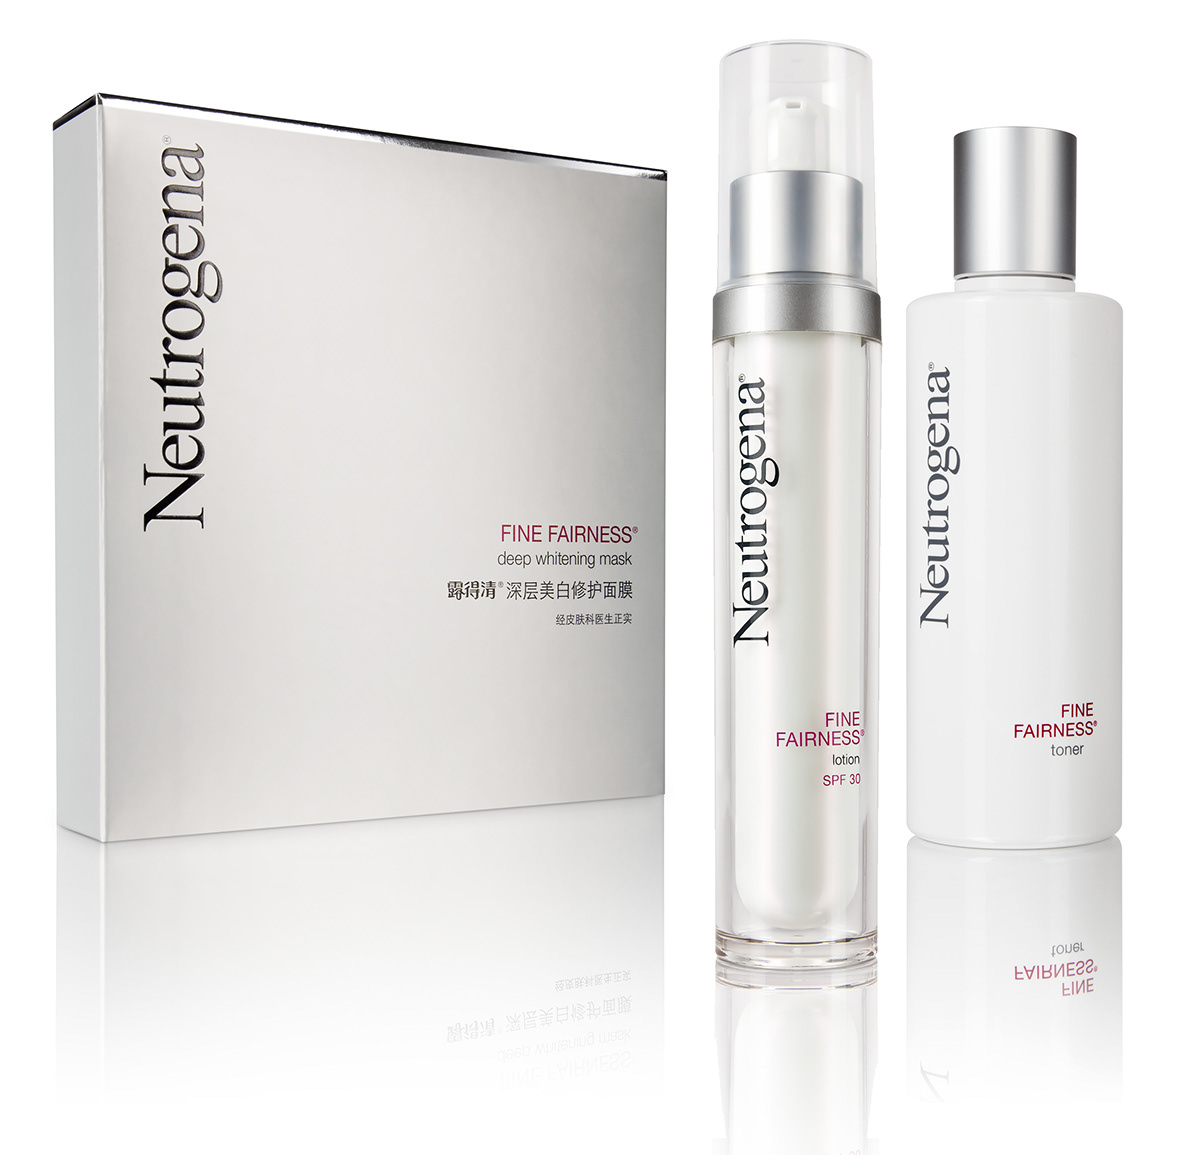 Neutrogena Fine Fairness Packaging